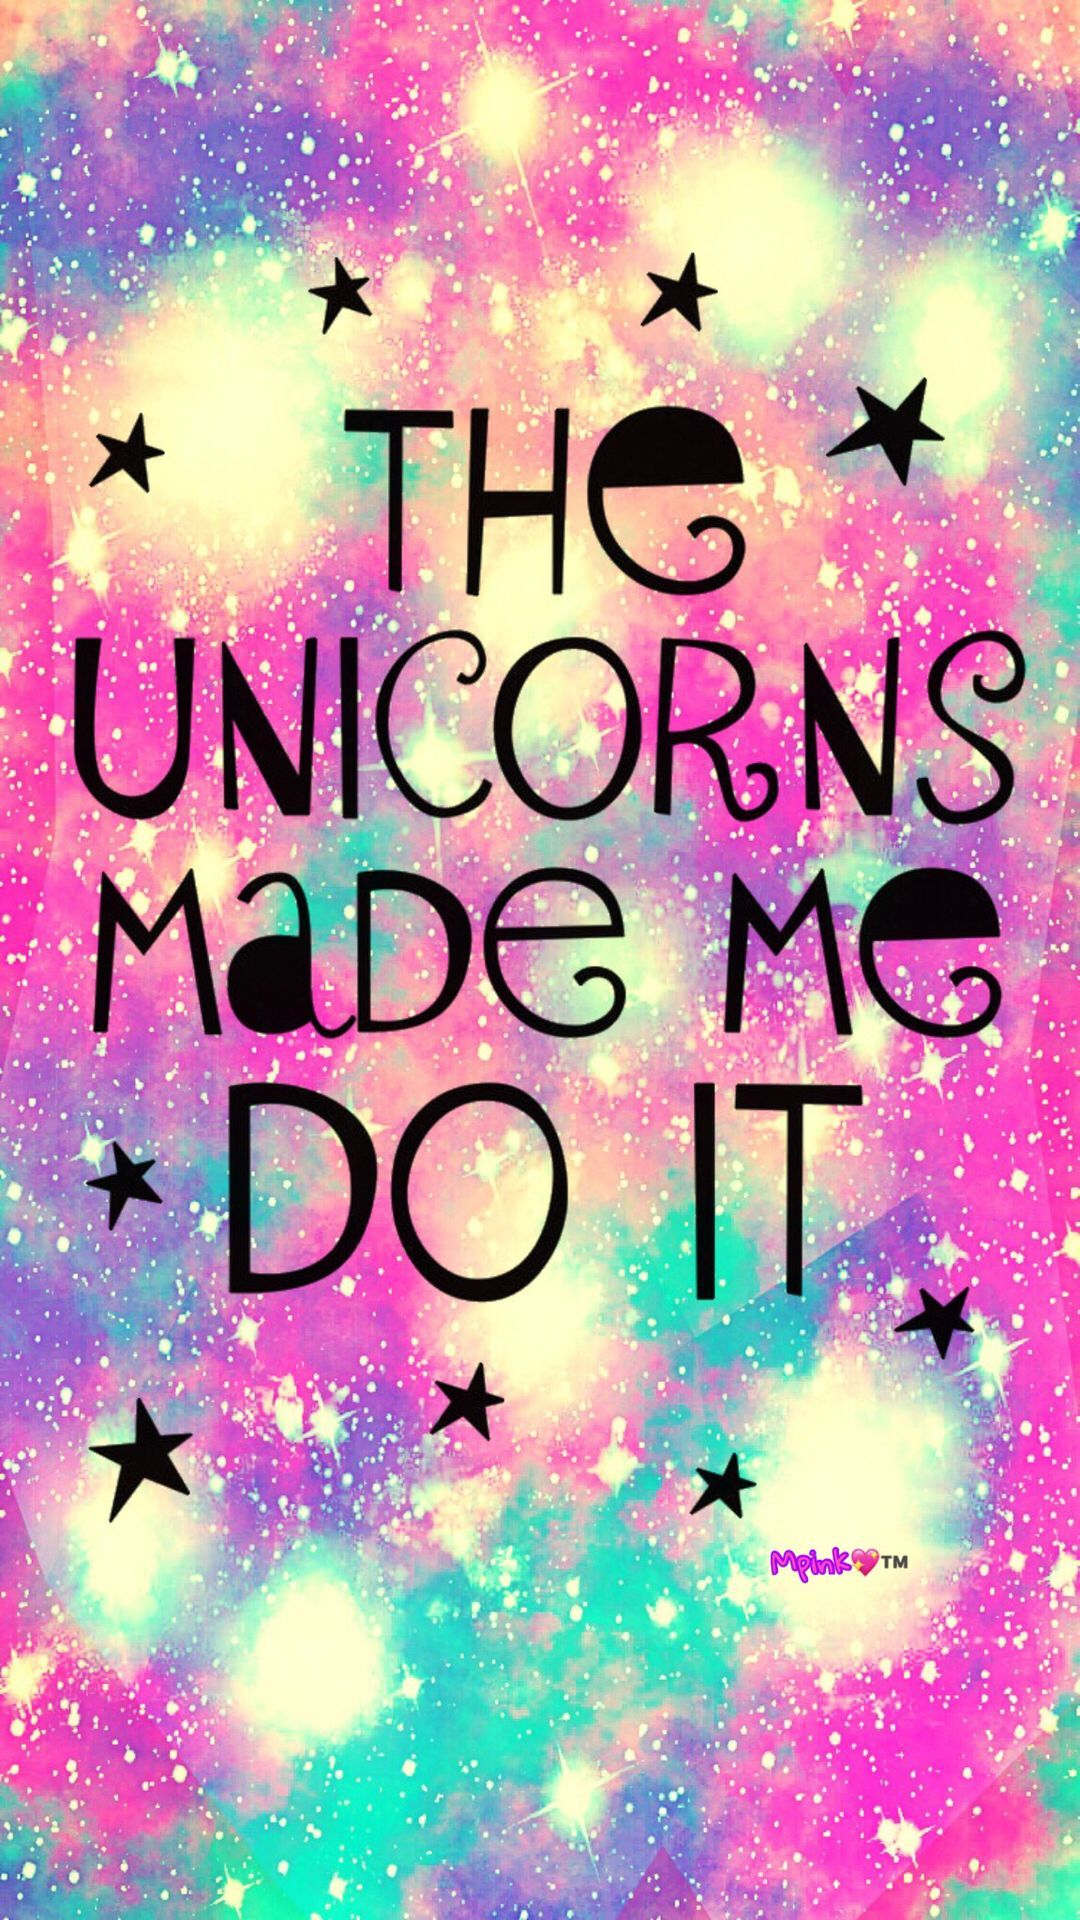 Glitter and Unicorns Wallpapers - Top Free Glitter and ...